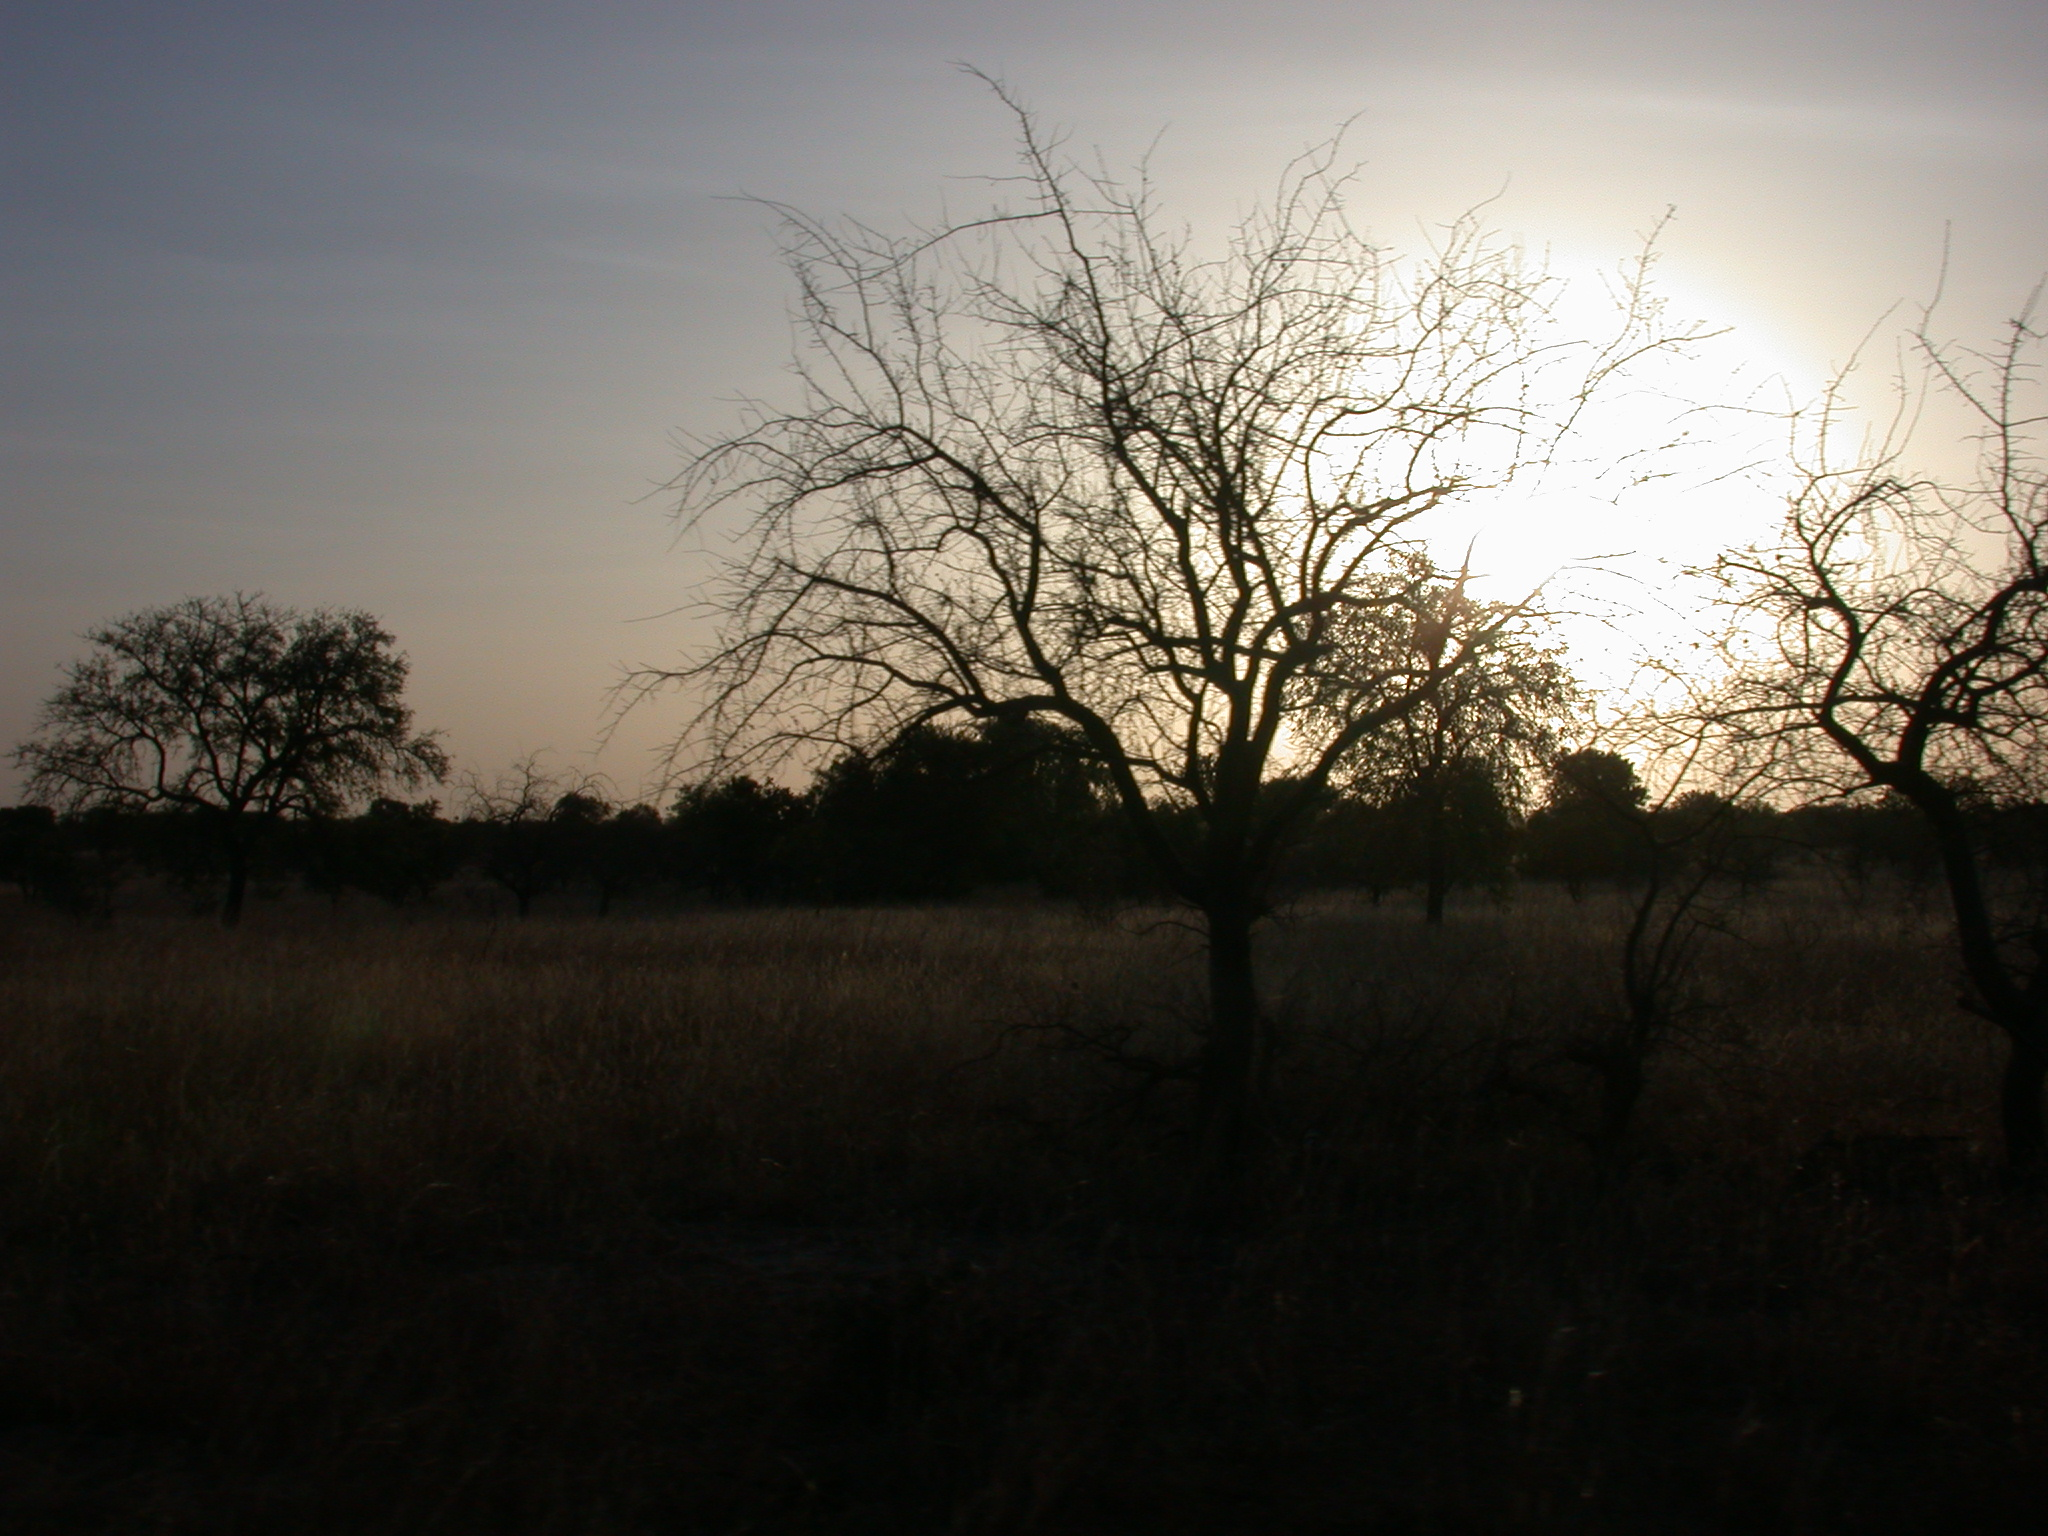 Sunset on the Route Between Nara and Sokolo, Mali